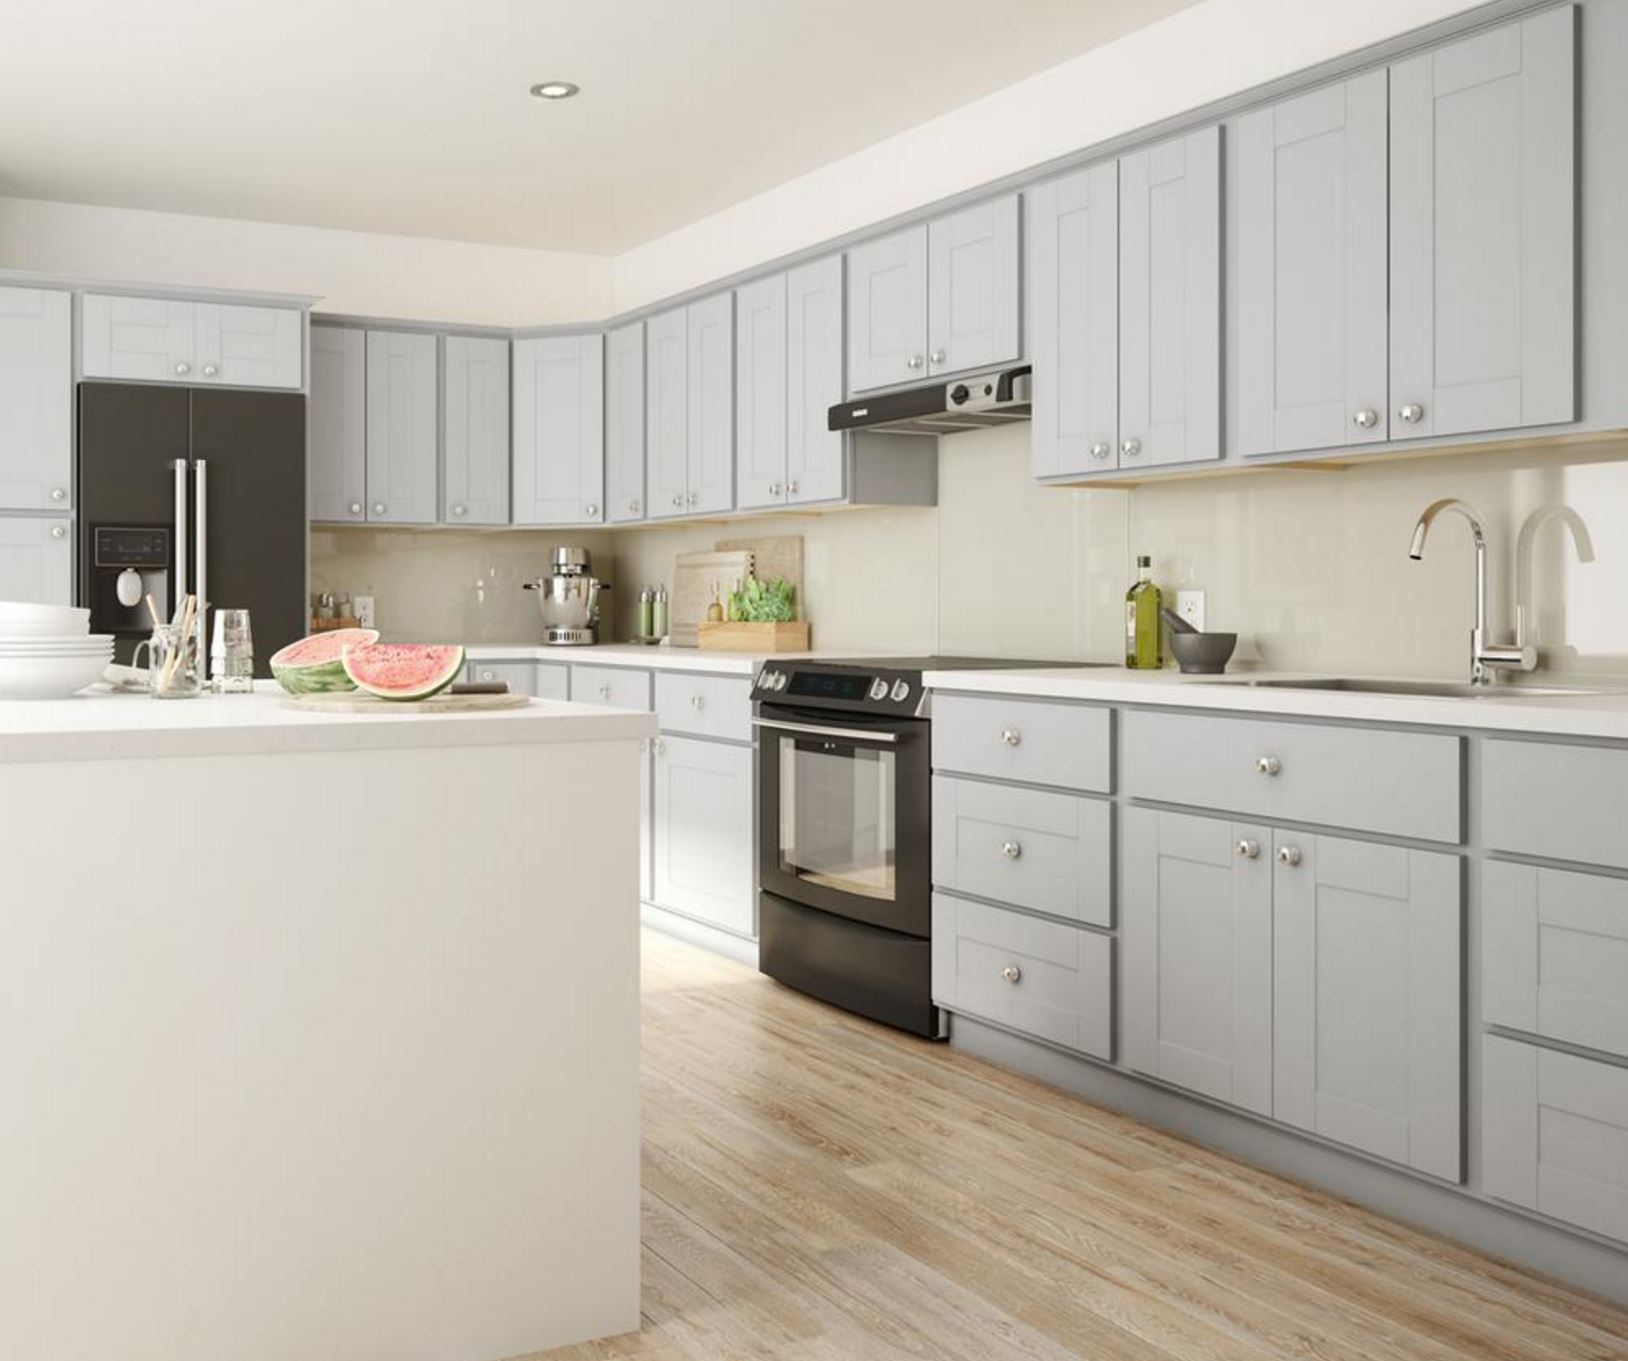 Kitchen Cabinets Home Depot: Princeton Base Cabinets In Warm Grey